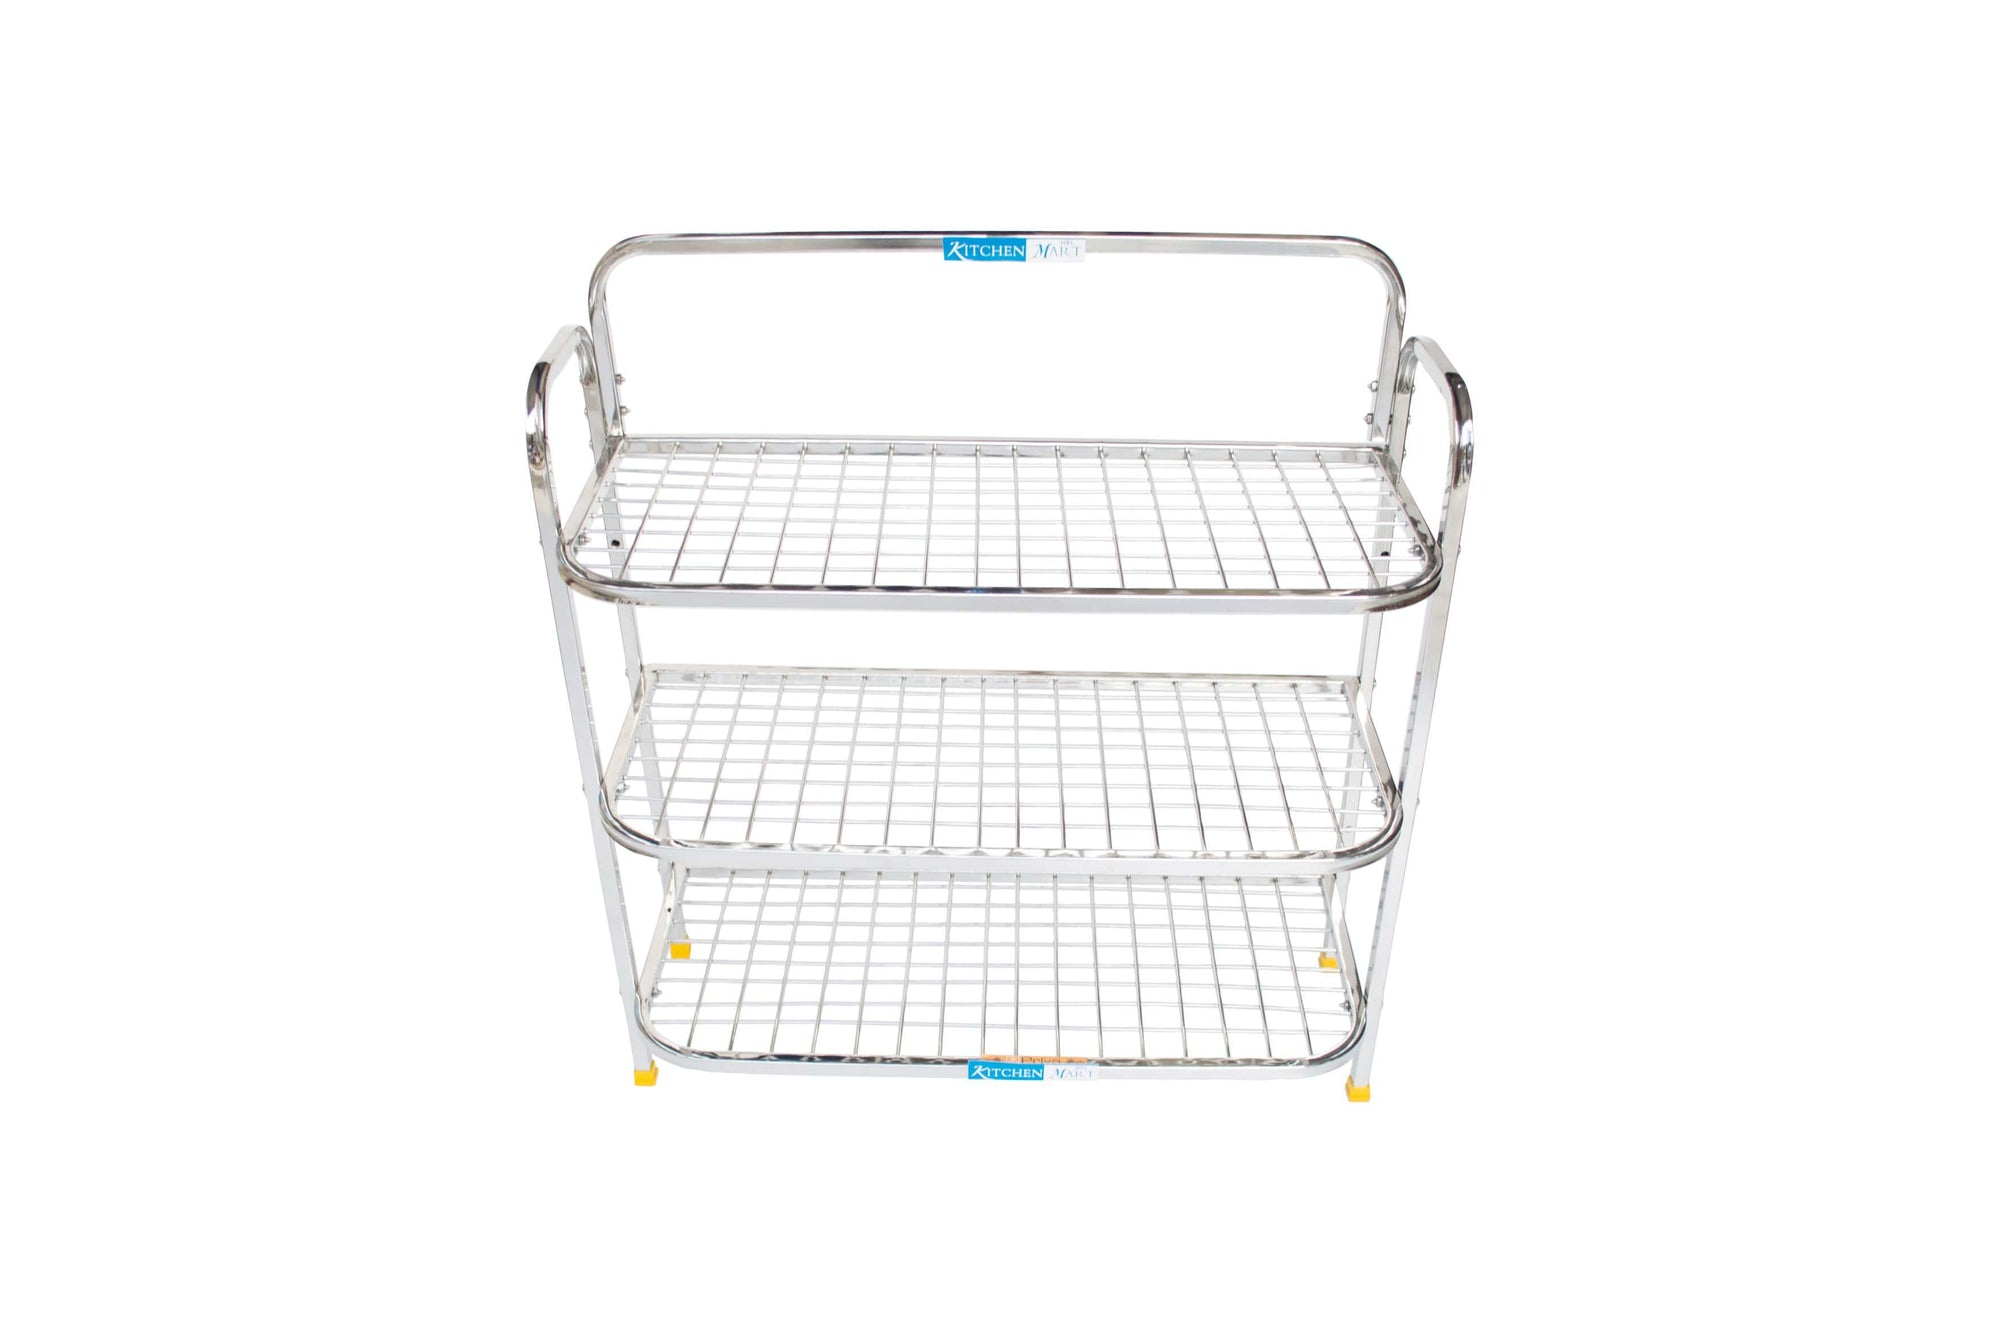 Kitchen Mart Stainless Steel shoe rack/ Kitchen Storage shelf rack (30x3) - KITCHEN MART